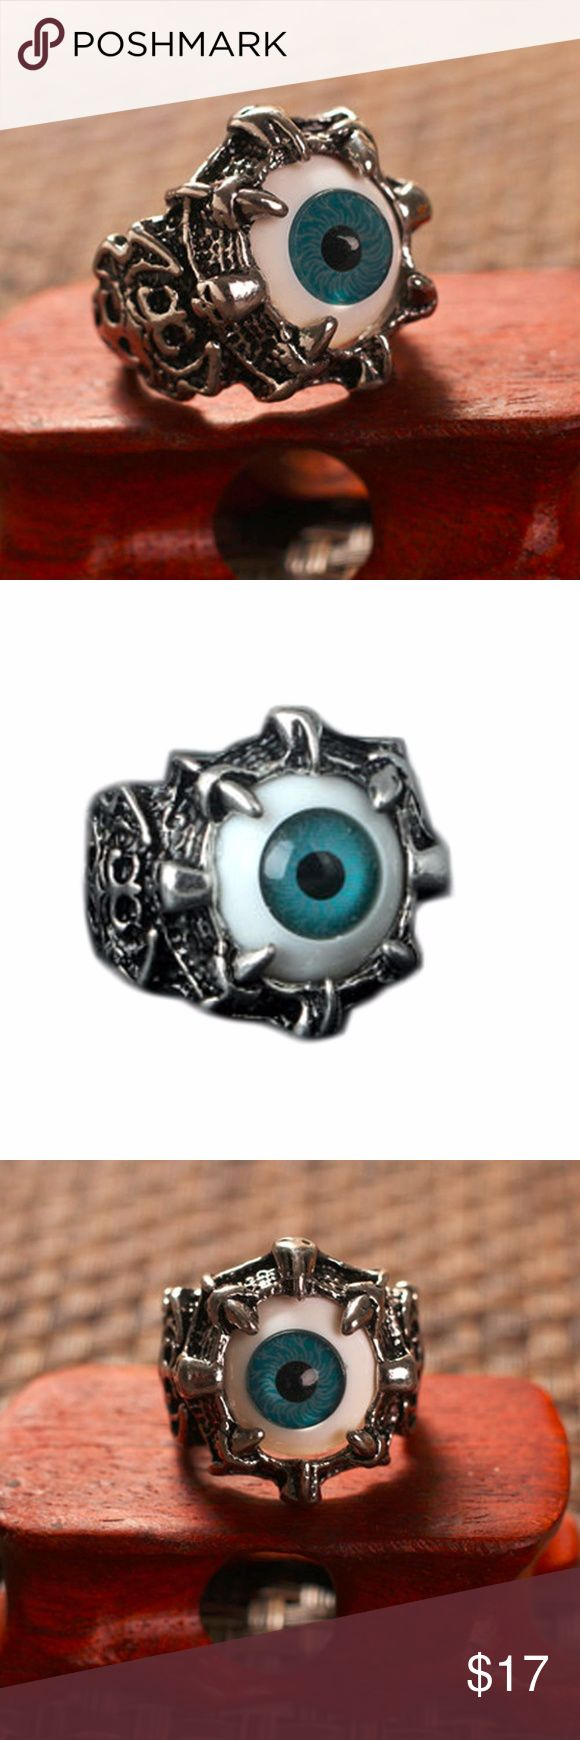 Dragon Claw Evil Eye Skull biker ring men women 100% SATISFY 100% TOP SERVICE  HOT DEAL!  IF YOU LIKE ANY ITEMS; MAKE AN OFFER. DON'T MISS BCZ OF PRICE! I WILL HANDLE THE REST :)) US SELLER! FAST SHIPPING 100% Brand New and High Quality Material: High quality 316L surgical stainless steel and acrylic. Color: silver & antique metal finished with black ocular prosthesis (artificial eye) Size: US Size 9-11 Color: Green Package contents: 1 x Ring Accessories Jewelry